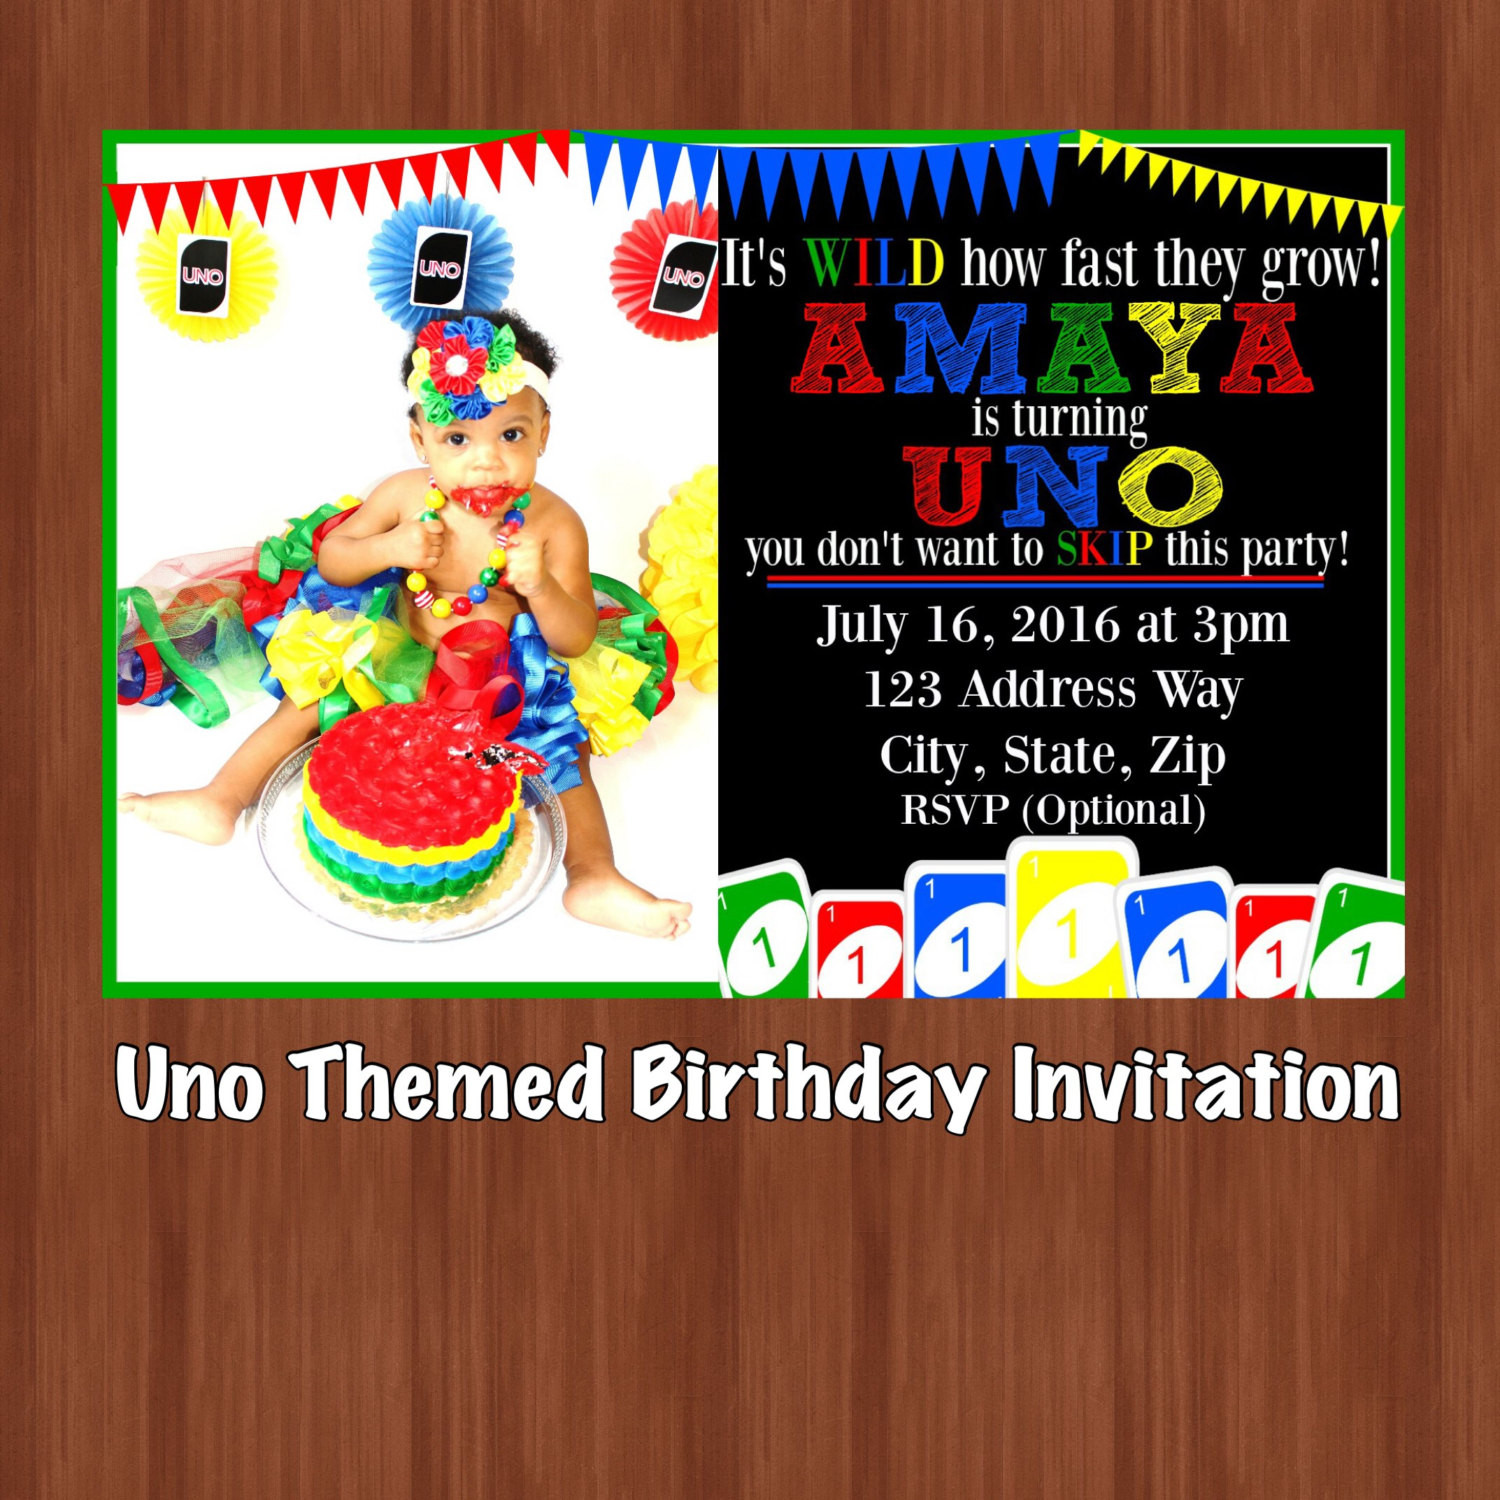 Best ideas about Uno Birthday Party . Save or Pin UNO Themed Birthday Party Invitation UNO e Year Old Now.